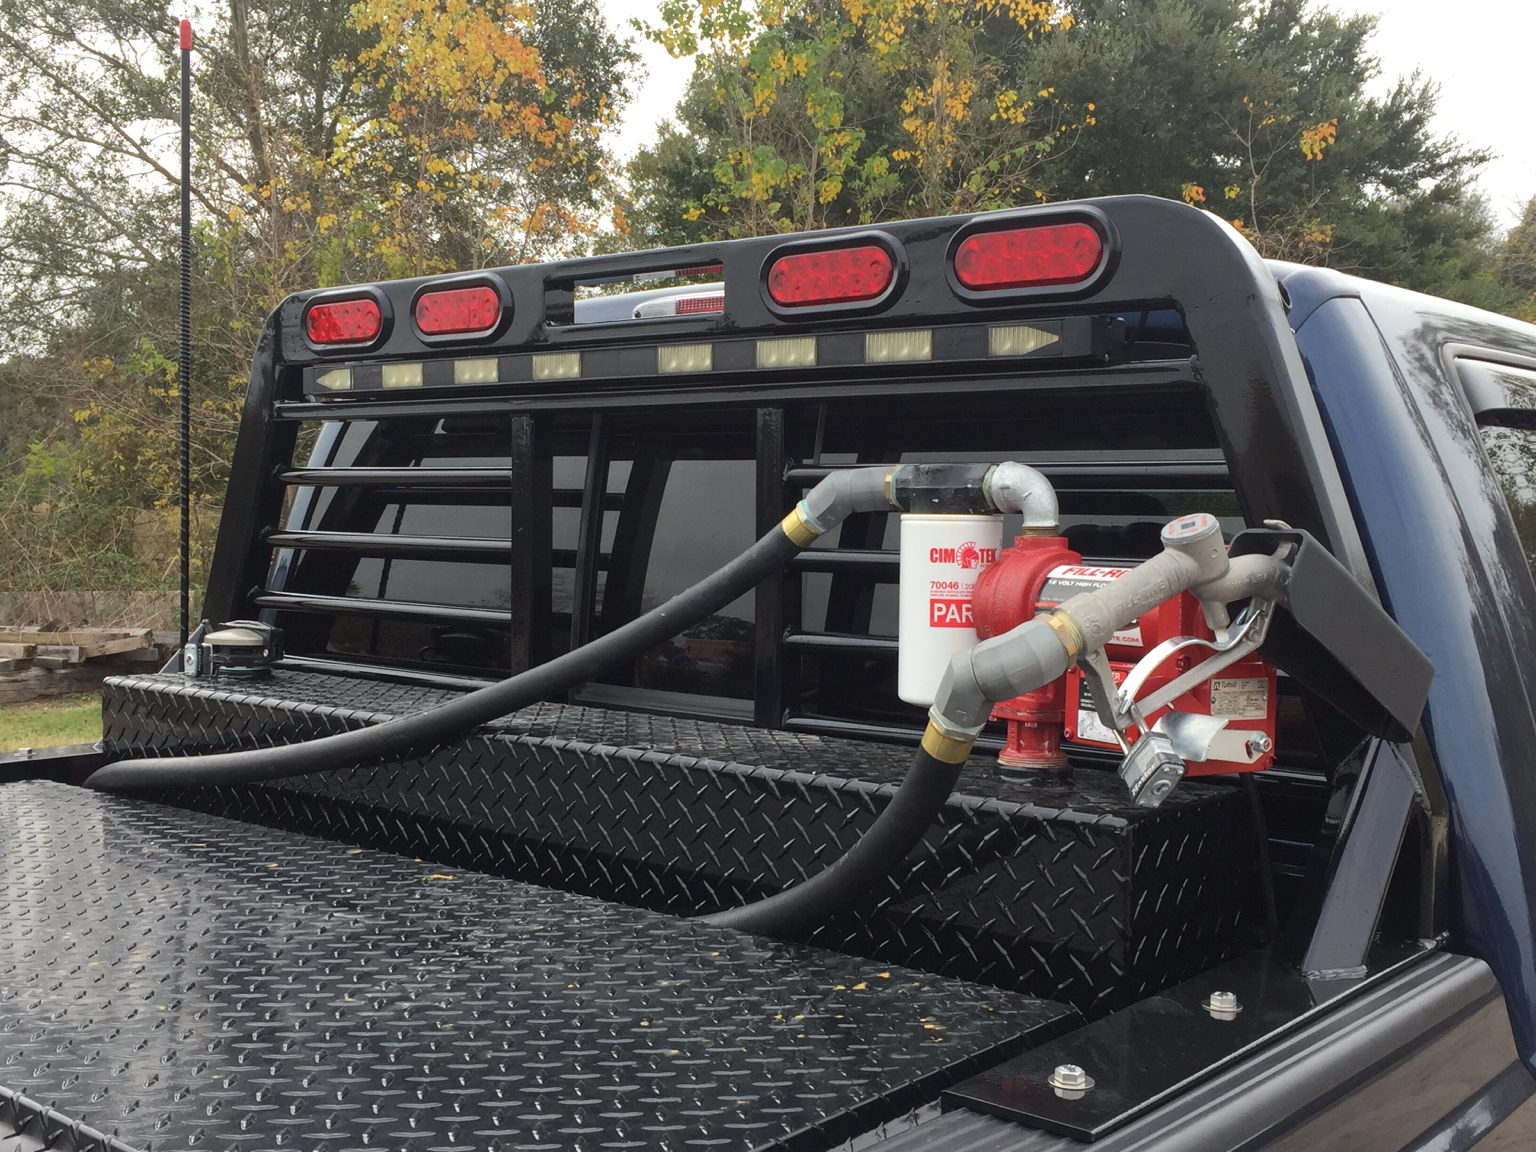 2016 F350 First Ford Build-img_3744.jpg